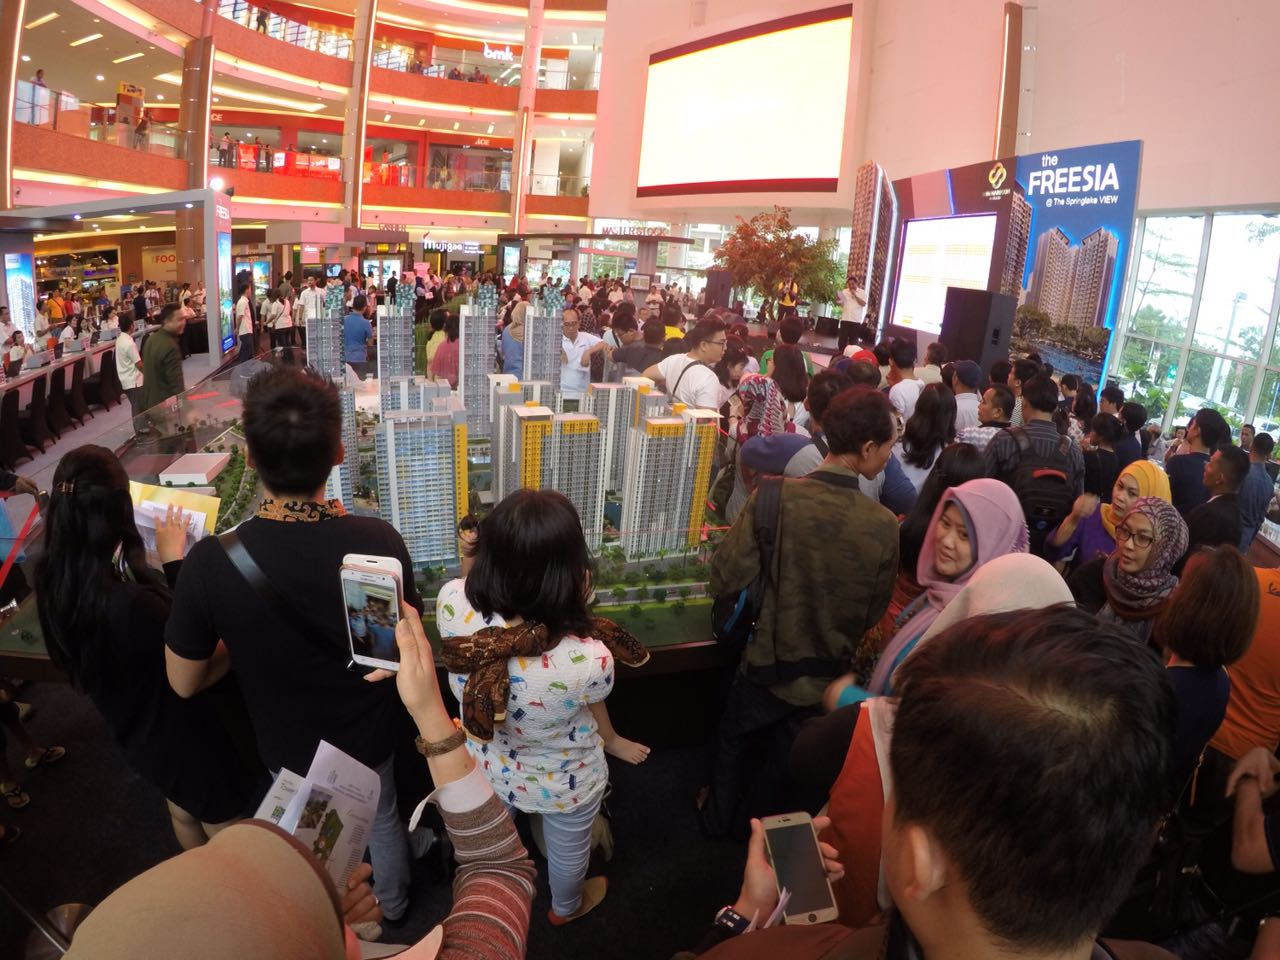 http://images-residence.summarecon.com/images/gallery/article/4575/IMG-20161023-WA0048.jpg